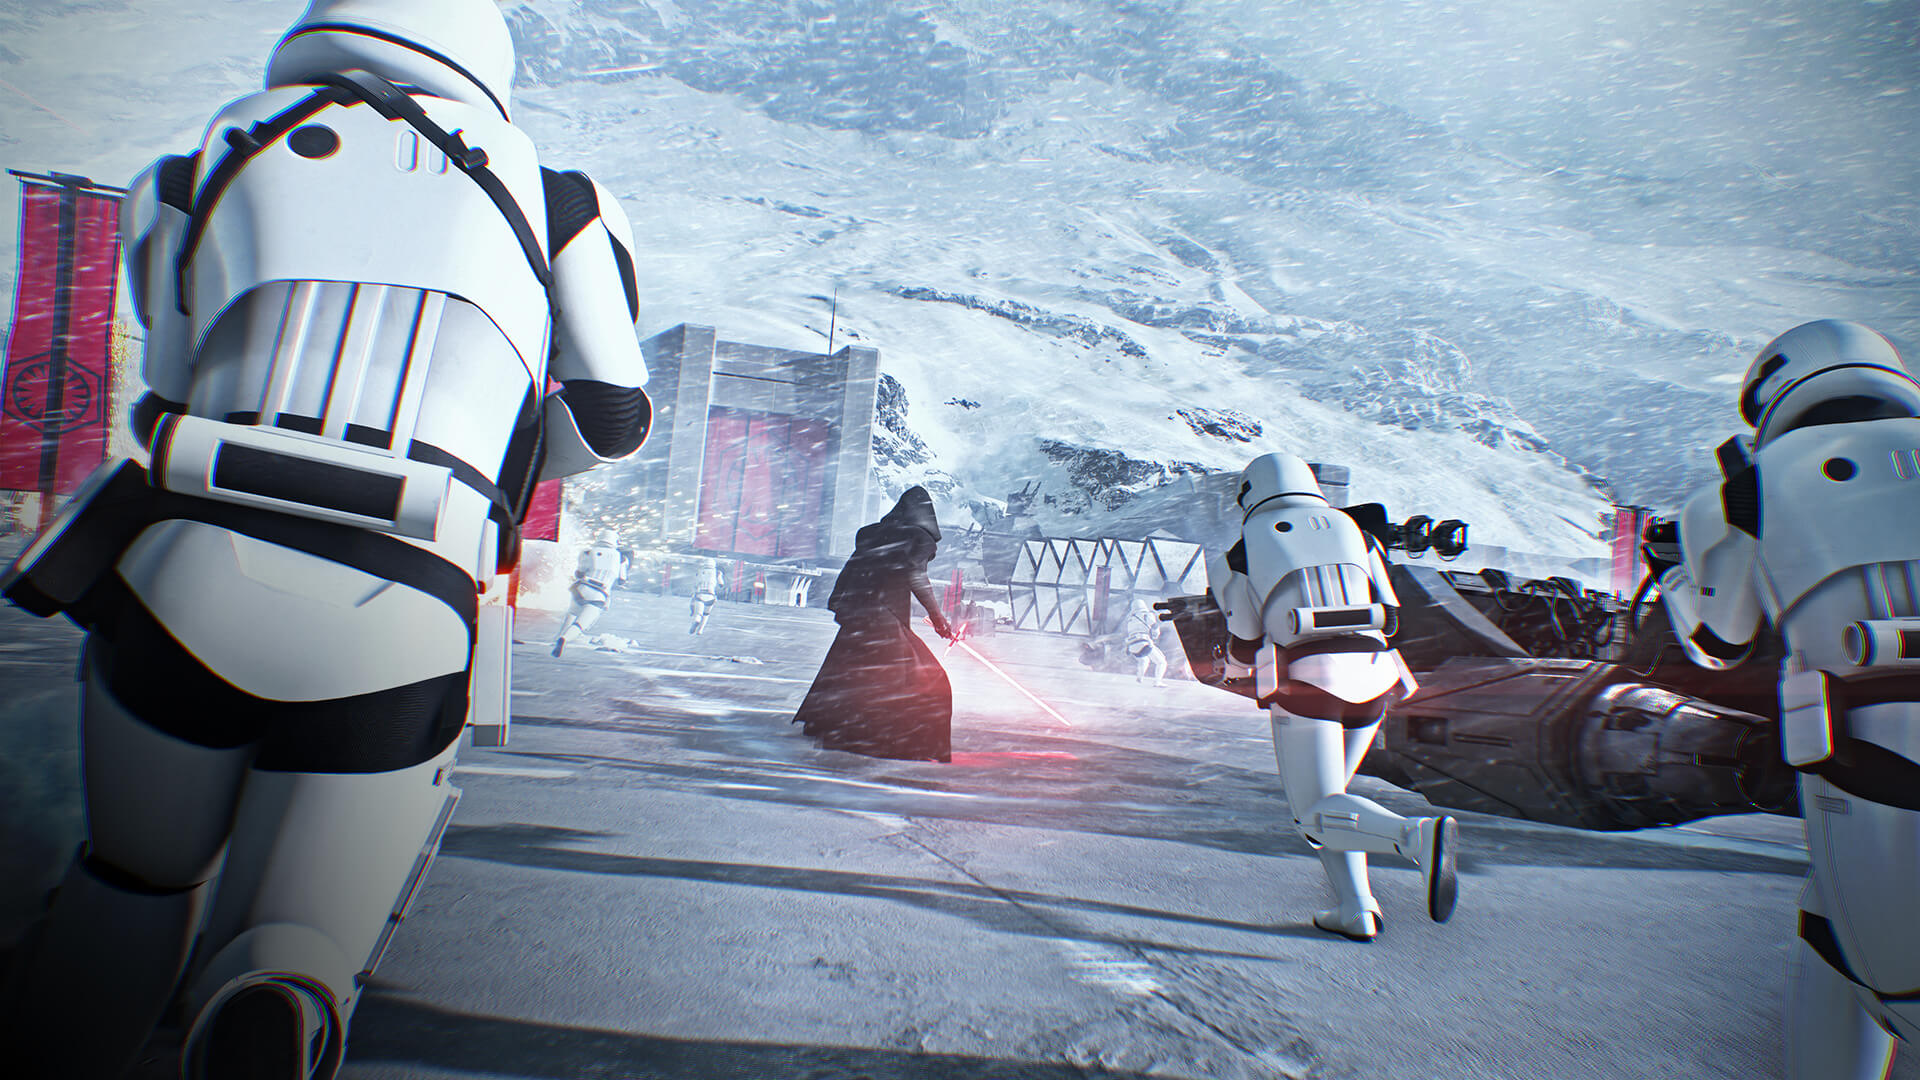 More Evidence Points to 'Star Wars Battlefront II' PSVR Content in the Works